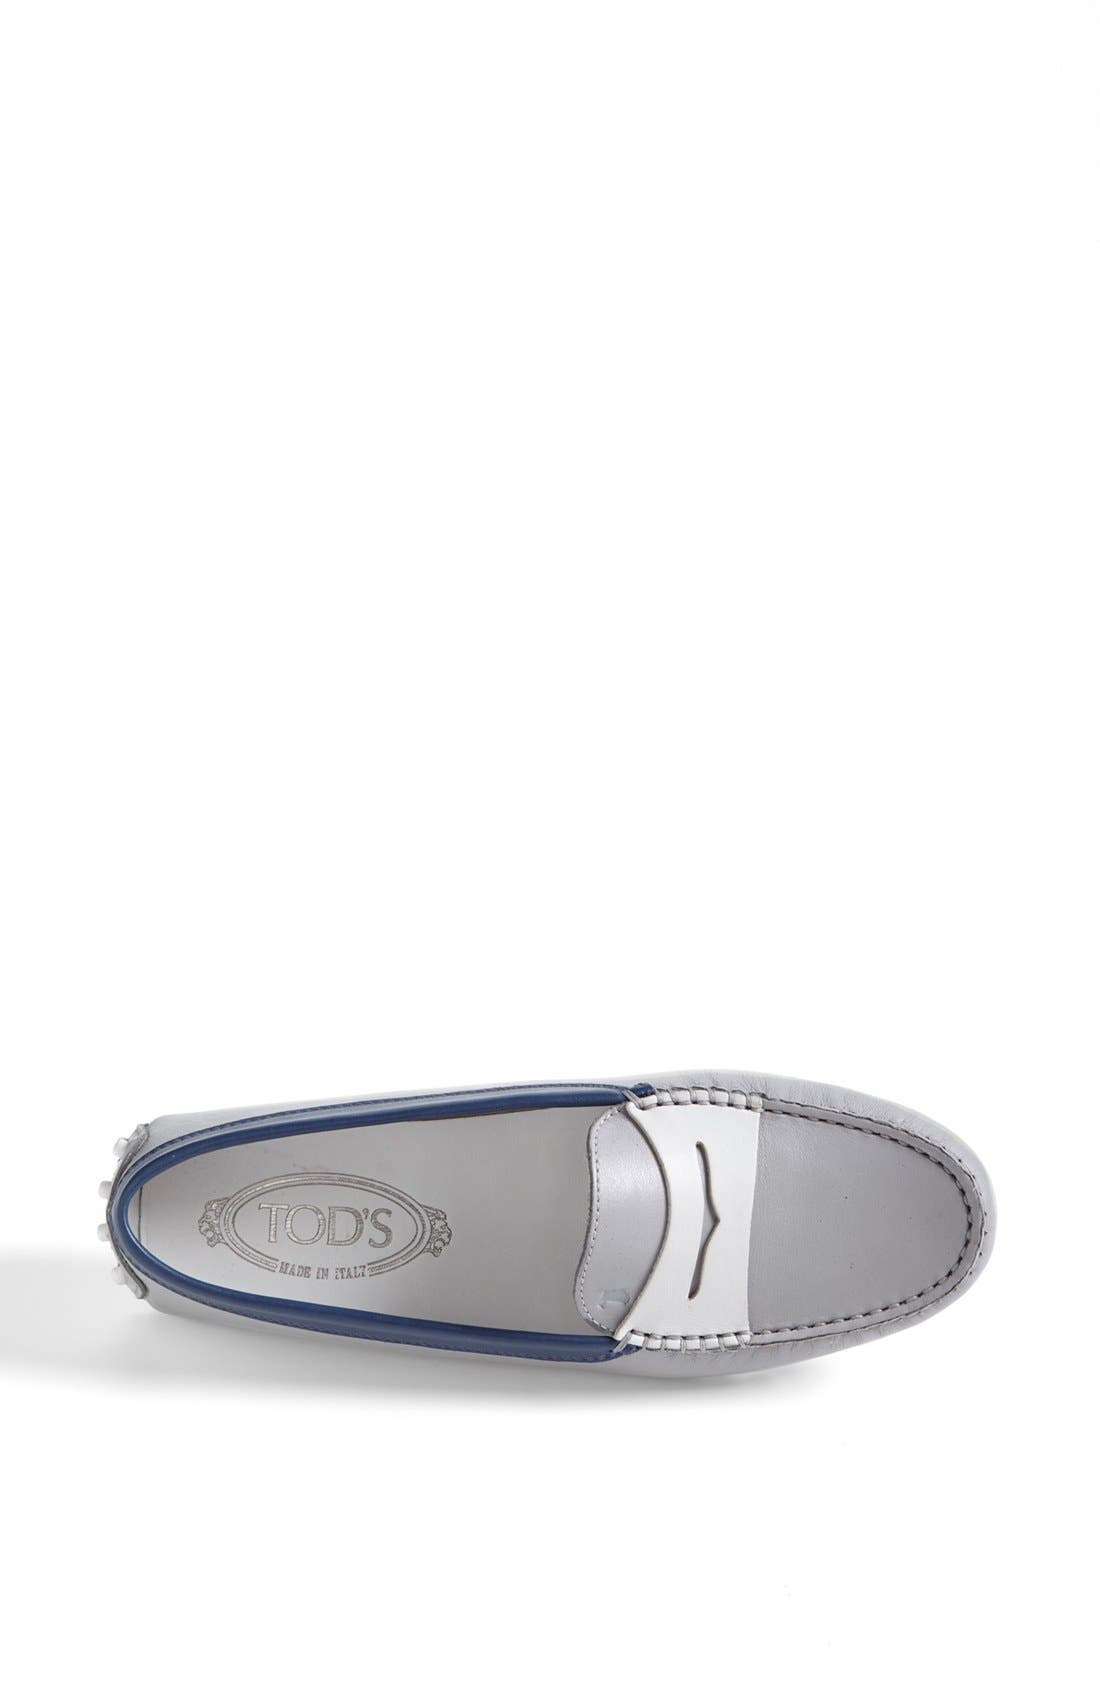 Alternate Image 3  - Tod's 'Gommini' Colorblocked Leather Driving Moccasin